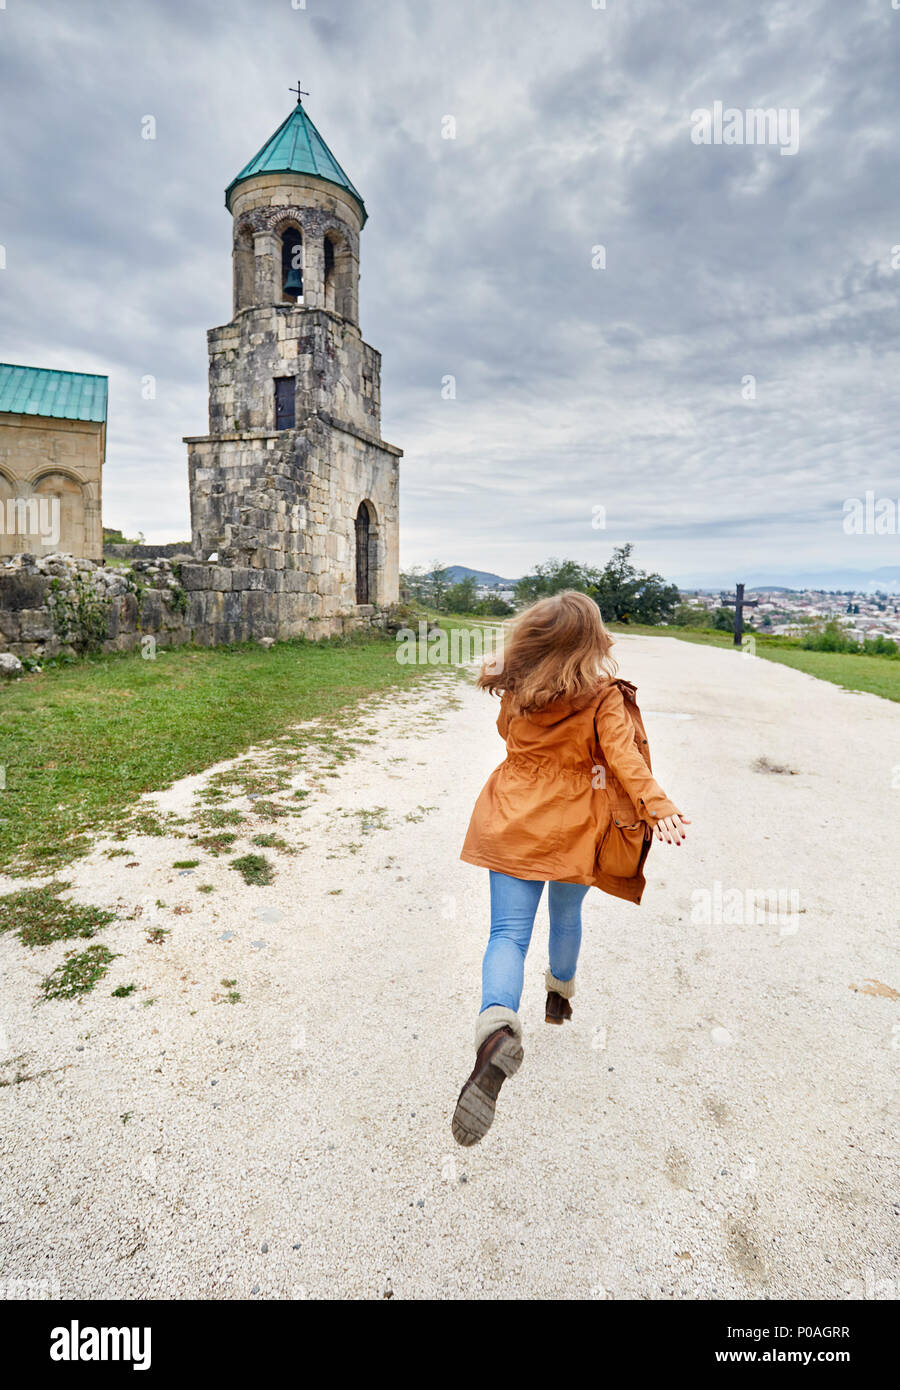 Woman running to the Chapel tower of Bagrati church at overcast sky in Kutaisi, Georgia - Stock Image